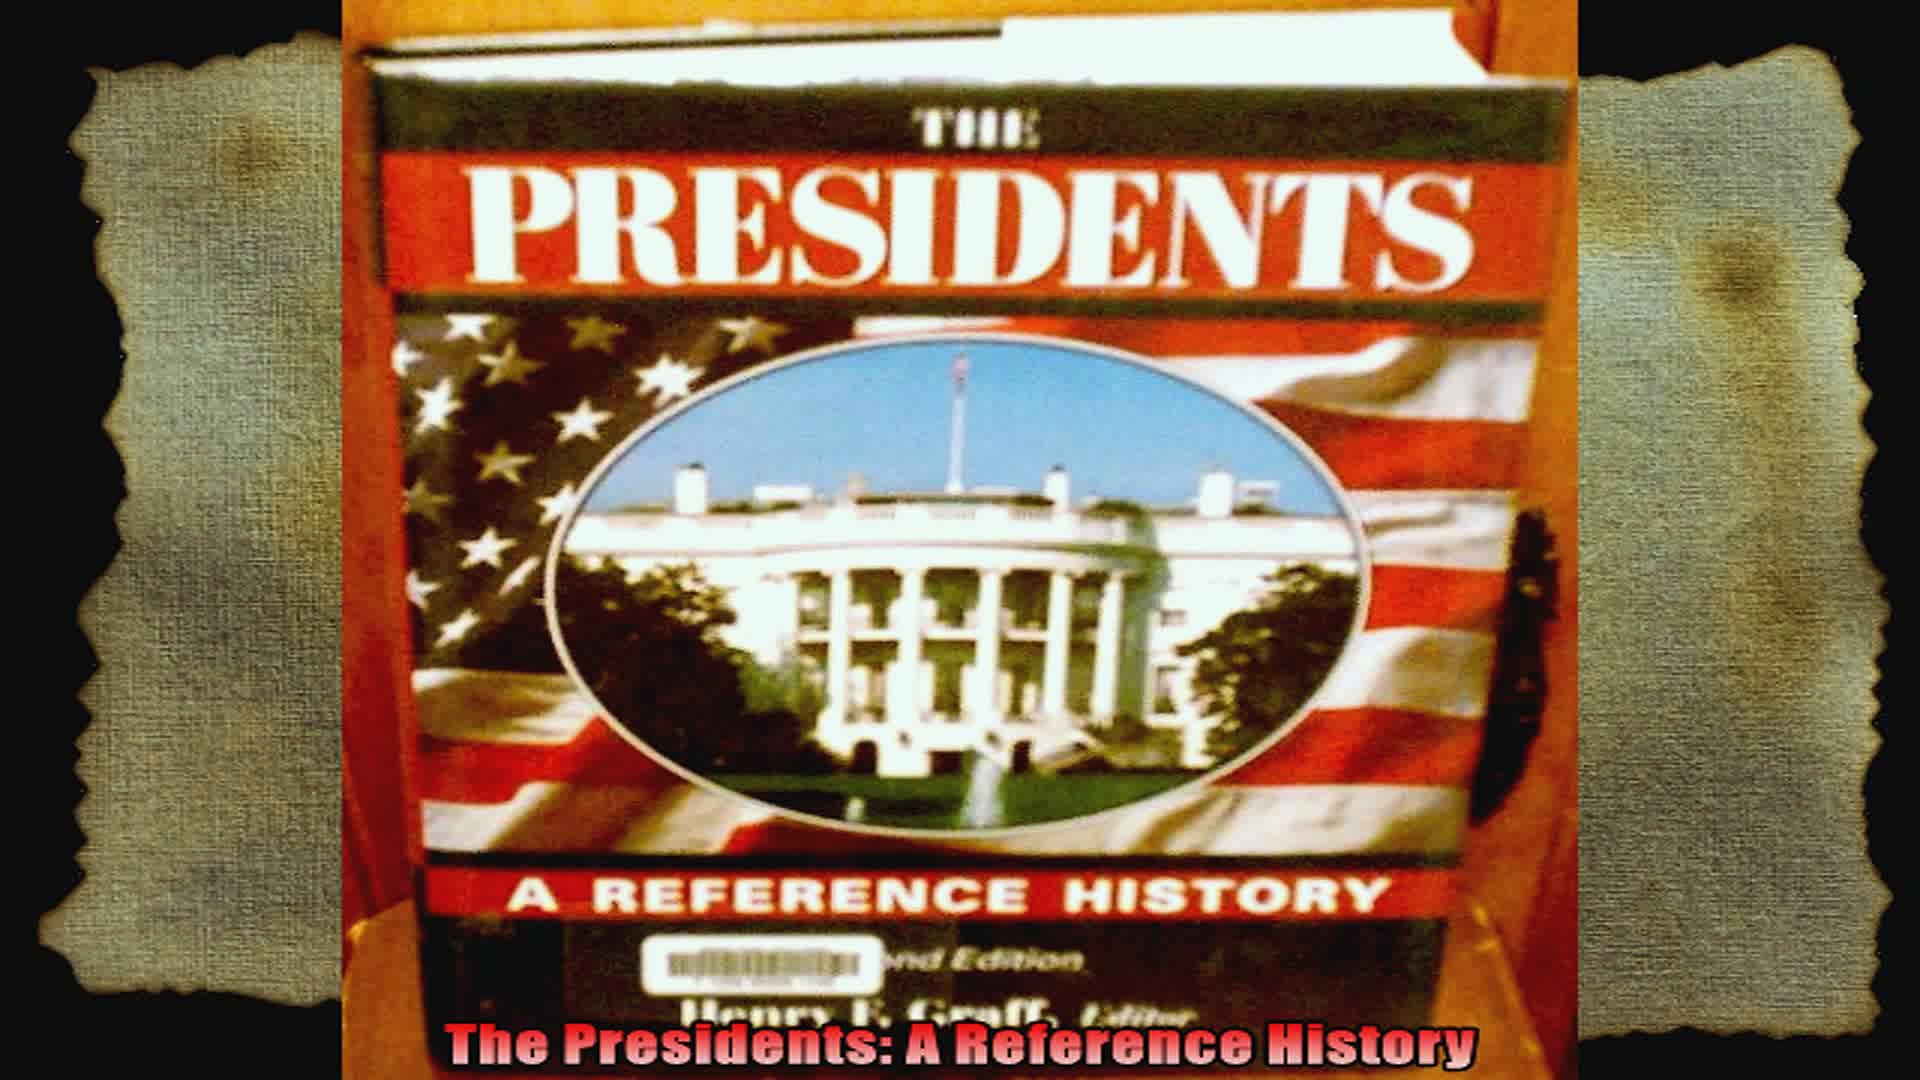 The Presidents A Reference History